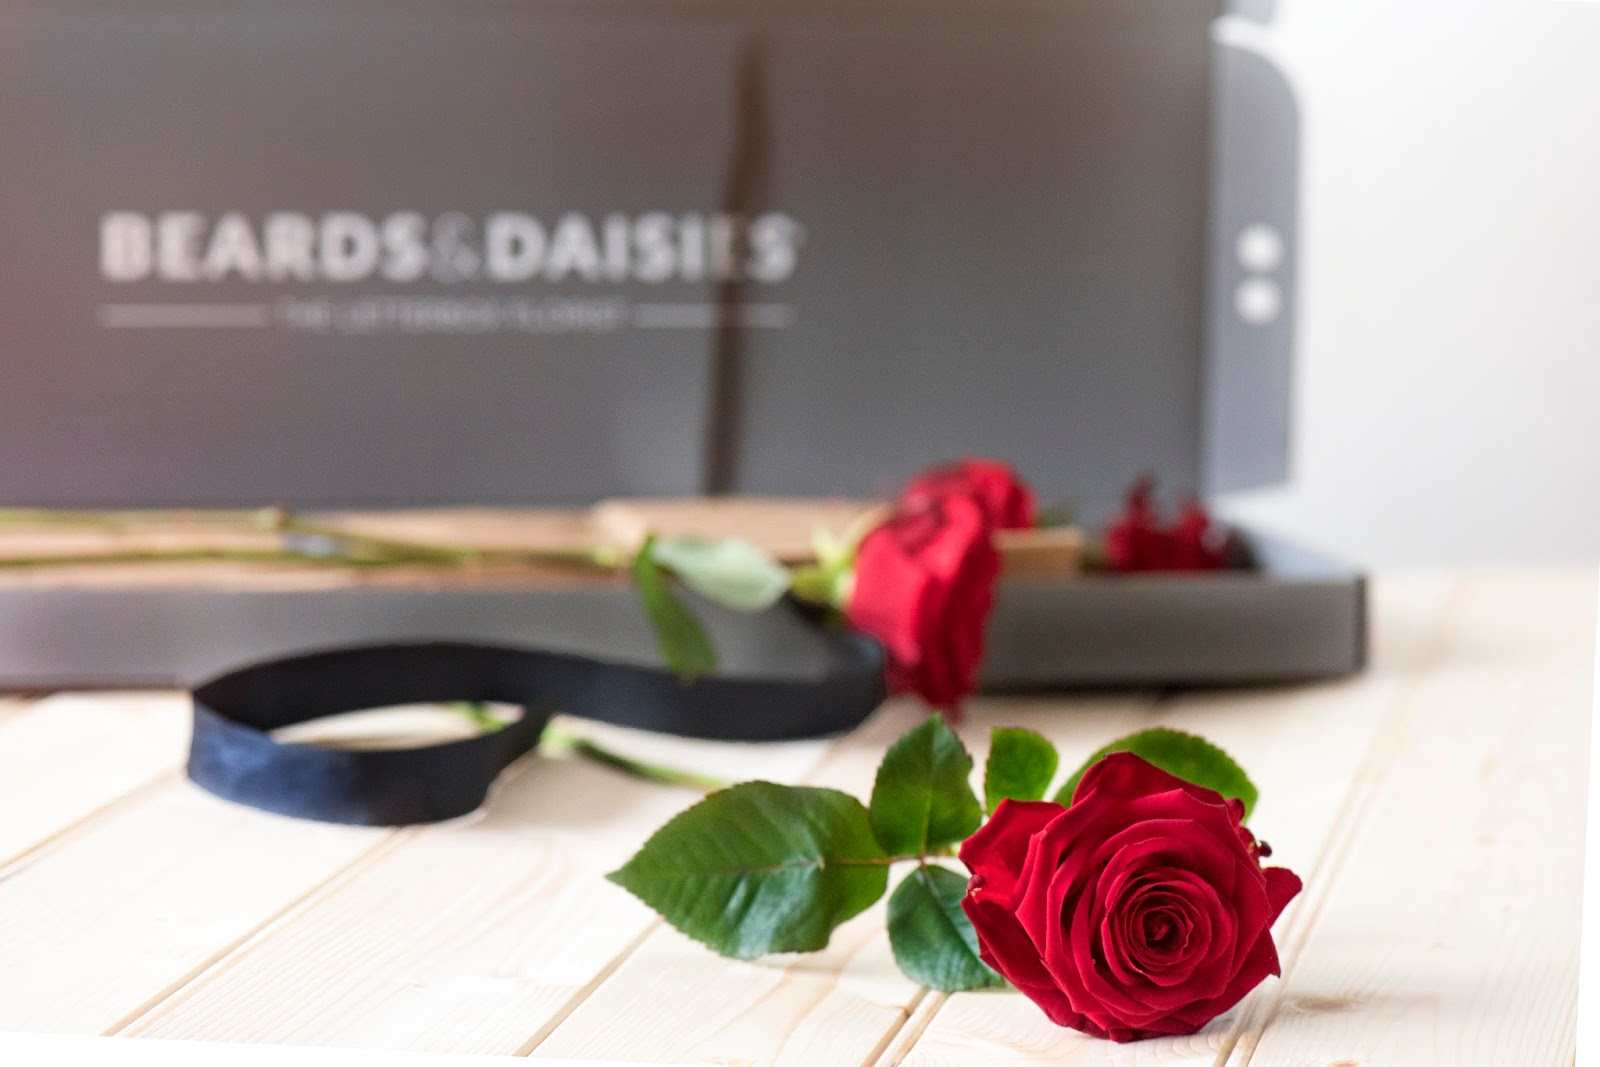 A ROSE BY ANY OTHER NAME: BEARDS AND DAISIES